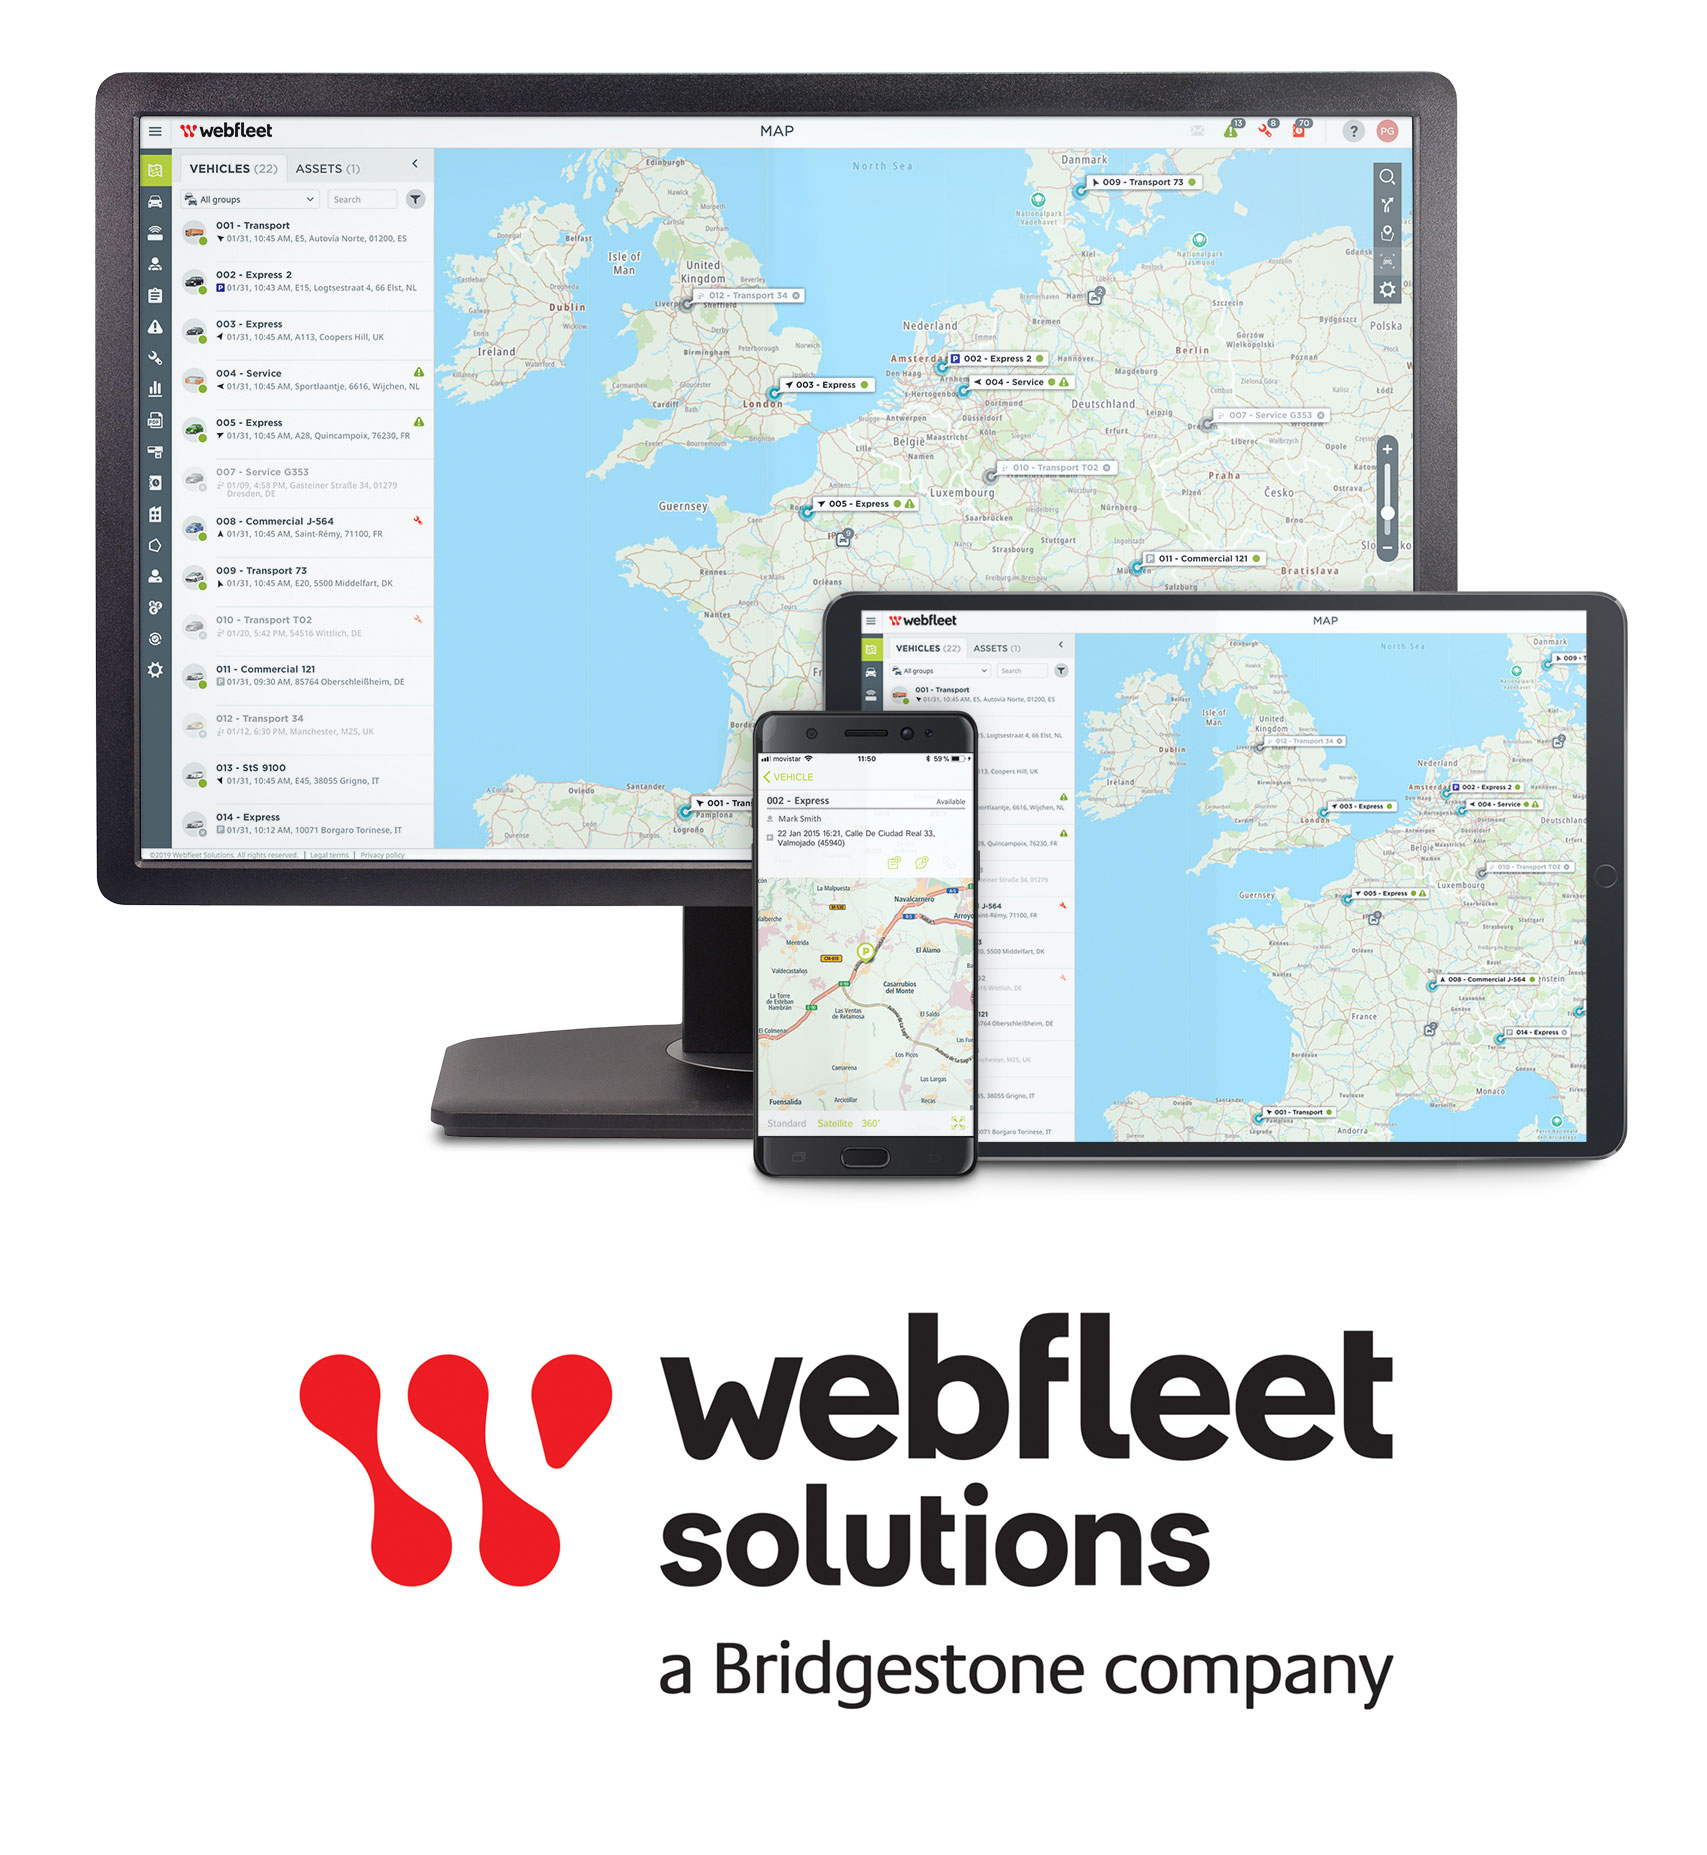 At CES, consumers can view a simulation of the Webfleet Solutions platform from Bridgestone to witness how telematics powers a connected vehicle ecosystem and helps fleets optimize their operations for productivity and cost-efficiency.